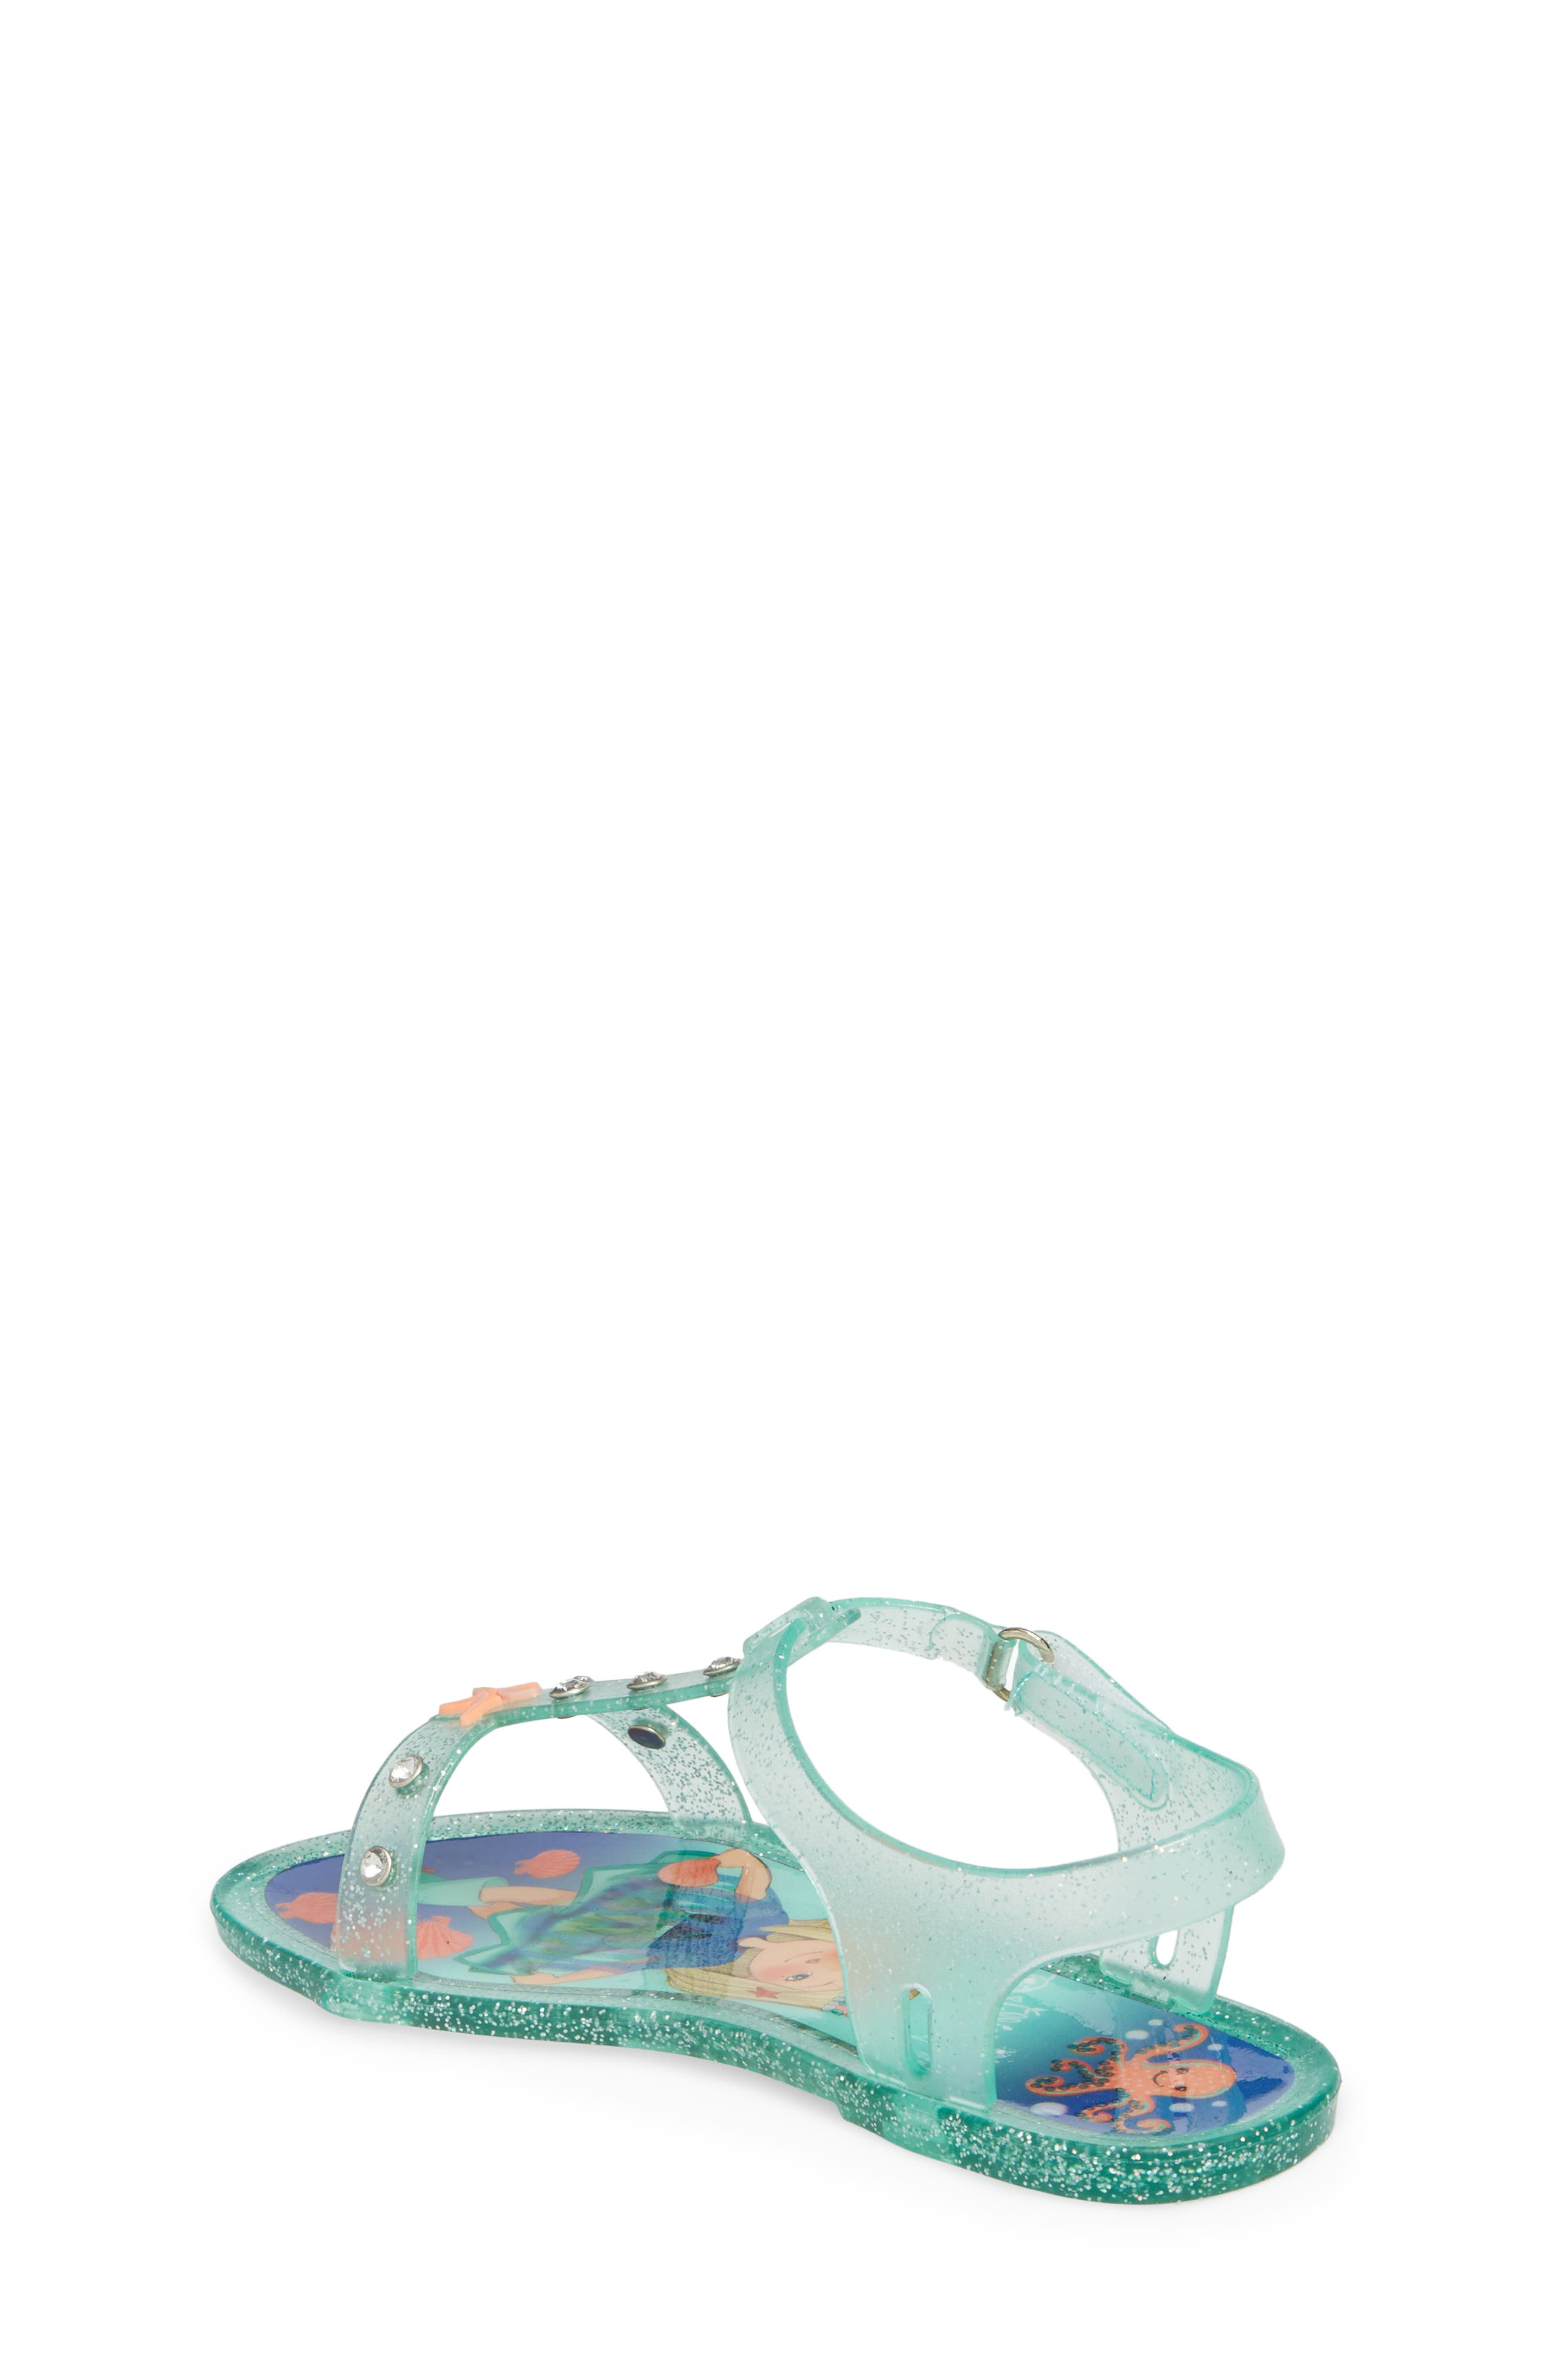 Camille Glitter Jelly Sandal,                             Alternate thumbnail 2, color,                             407